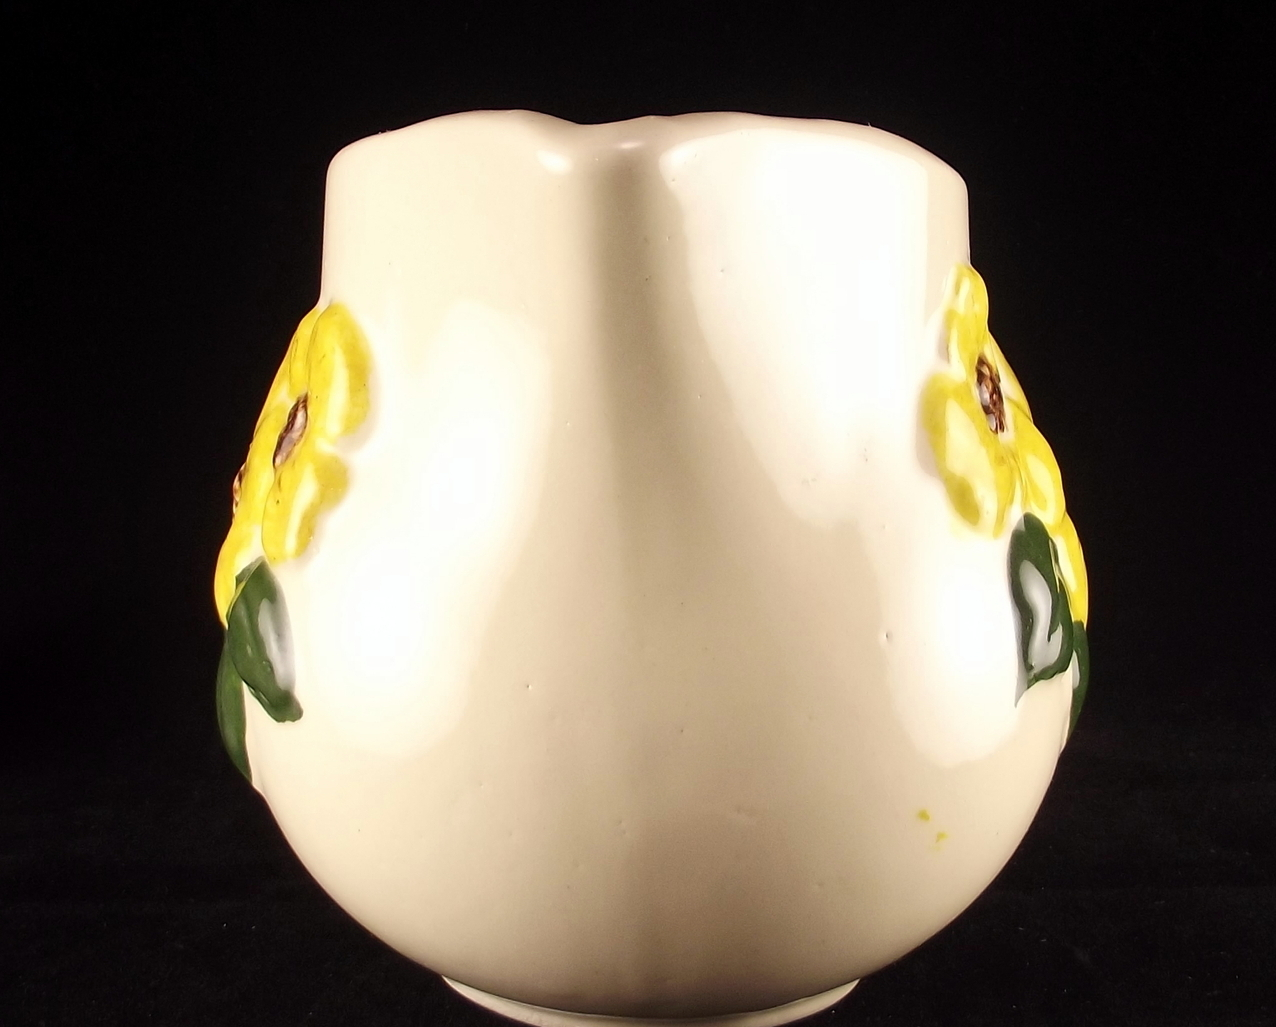 Vintage American Bisque APCO pottery pitcher yellow flowers